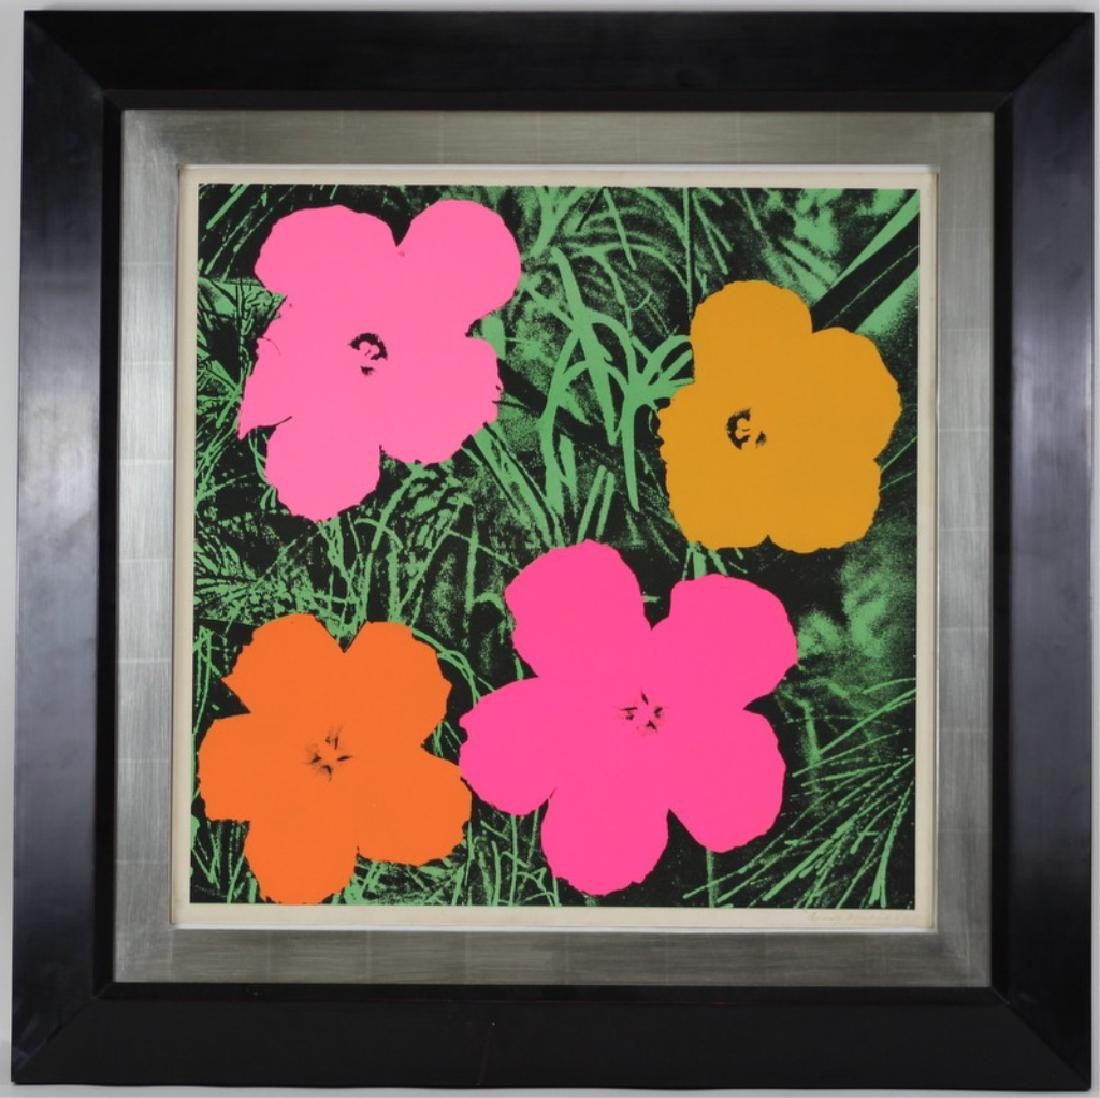 """Original Andy Warhol """"Flowers"""" 1964 Lithograph - 4"""